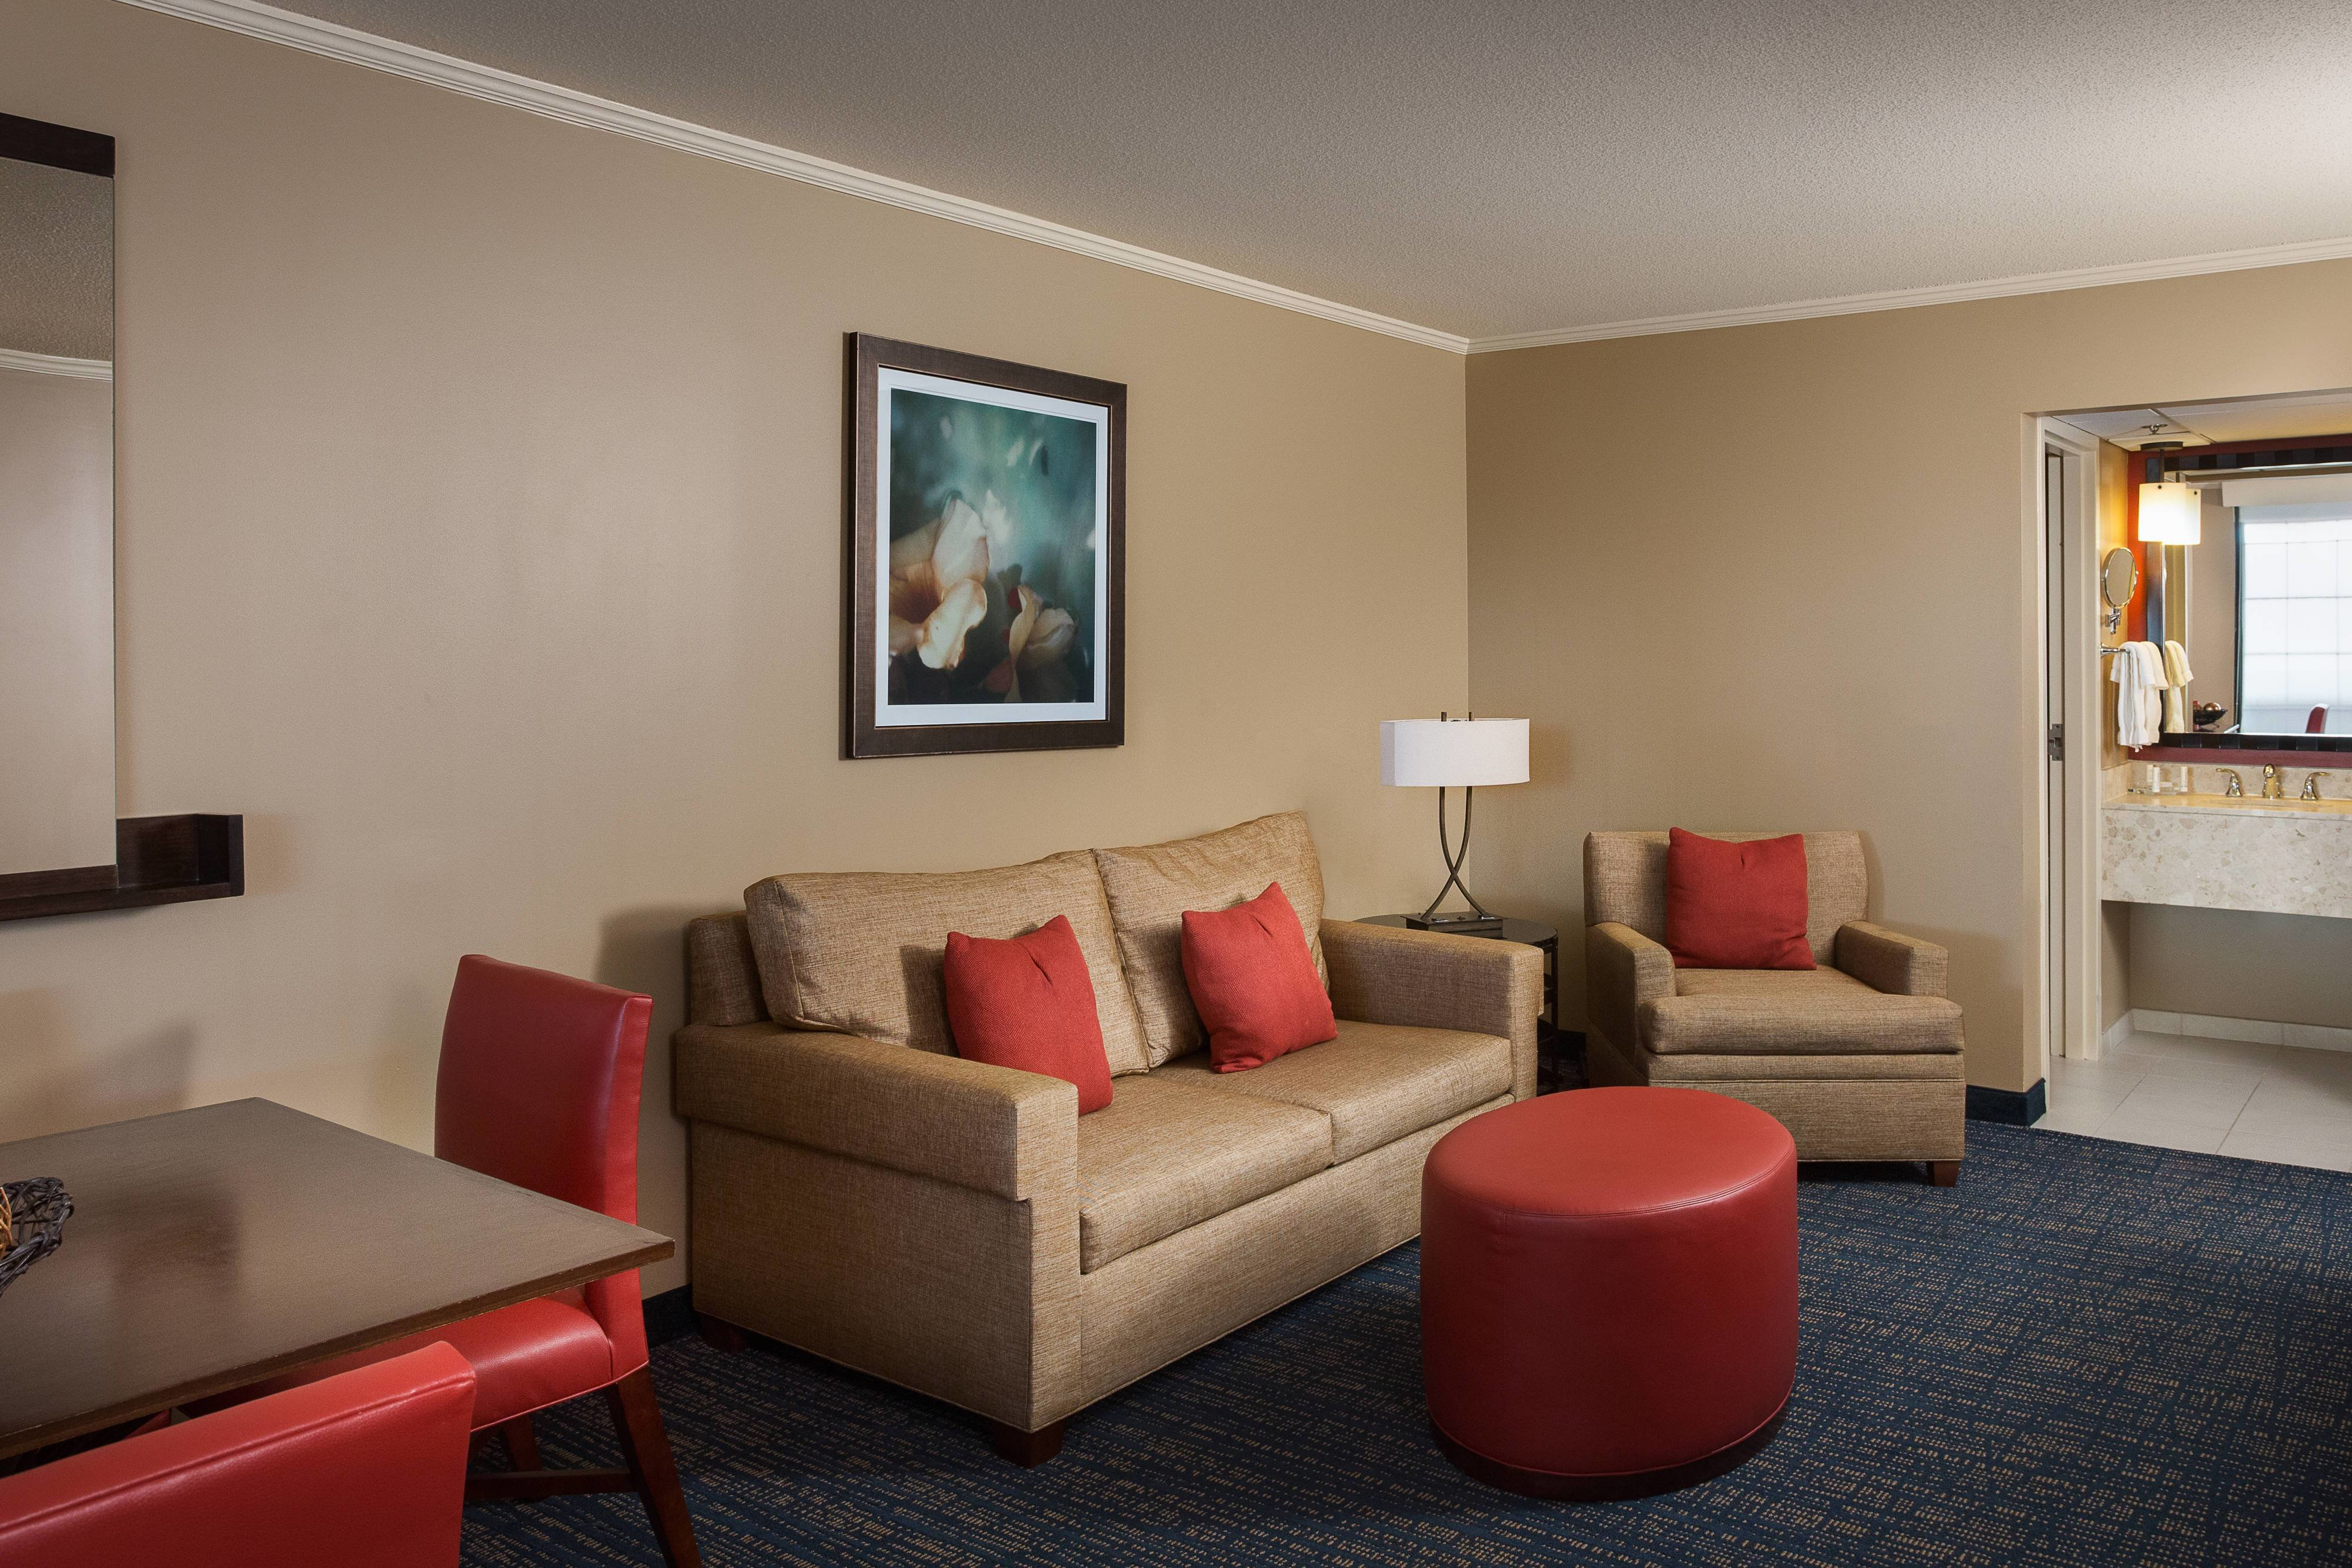 Best Music Valley Hotel Rooms Near Opryland The Inn At With Pictures